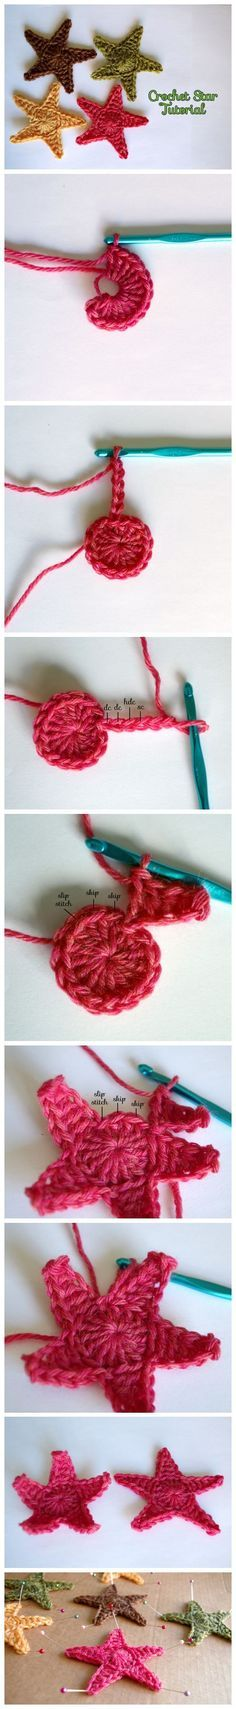 How to make a crochet star | best stuff